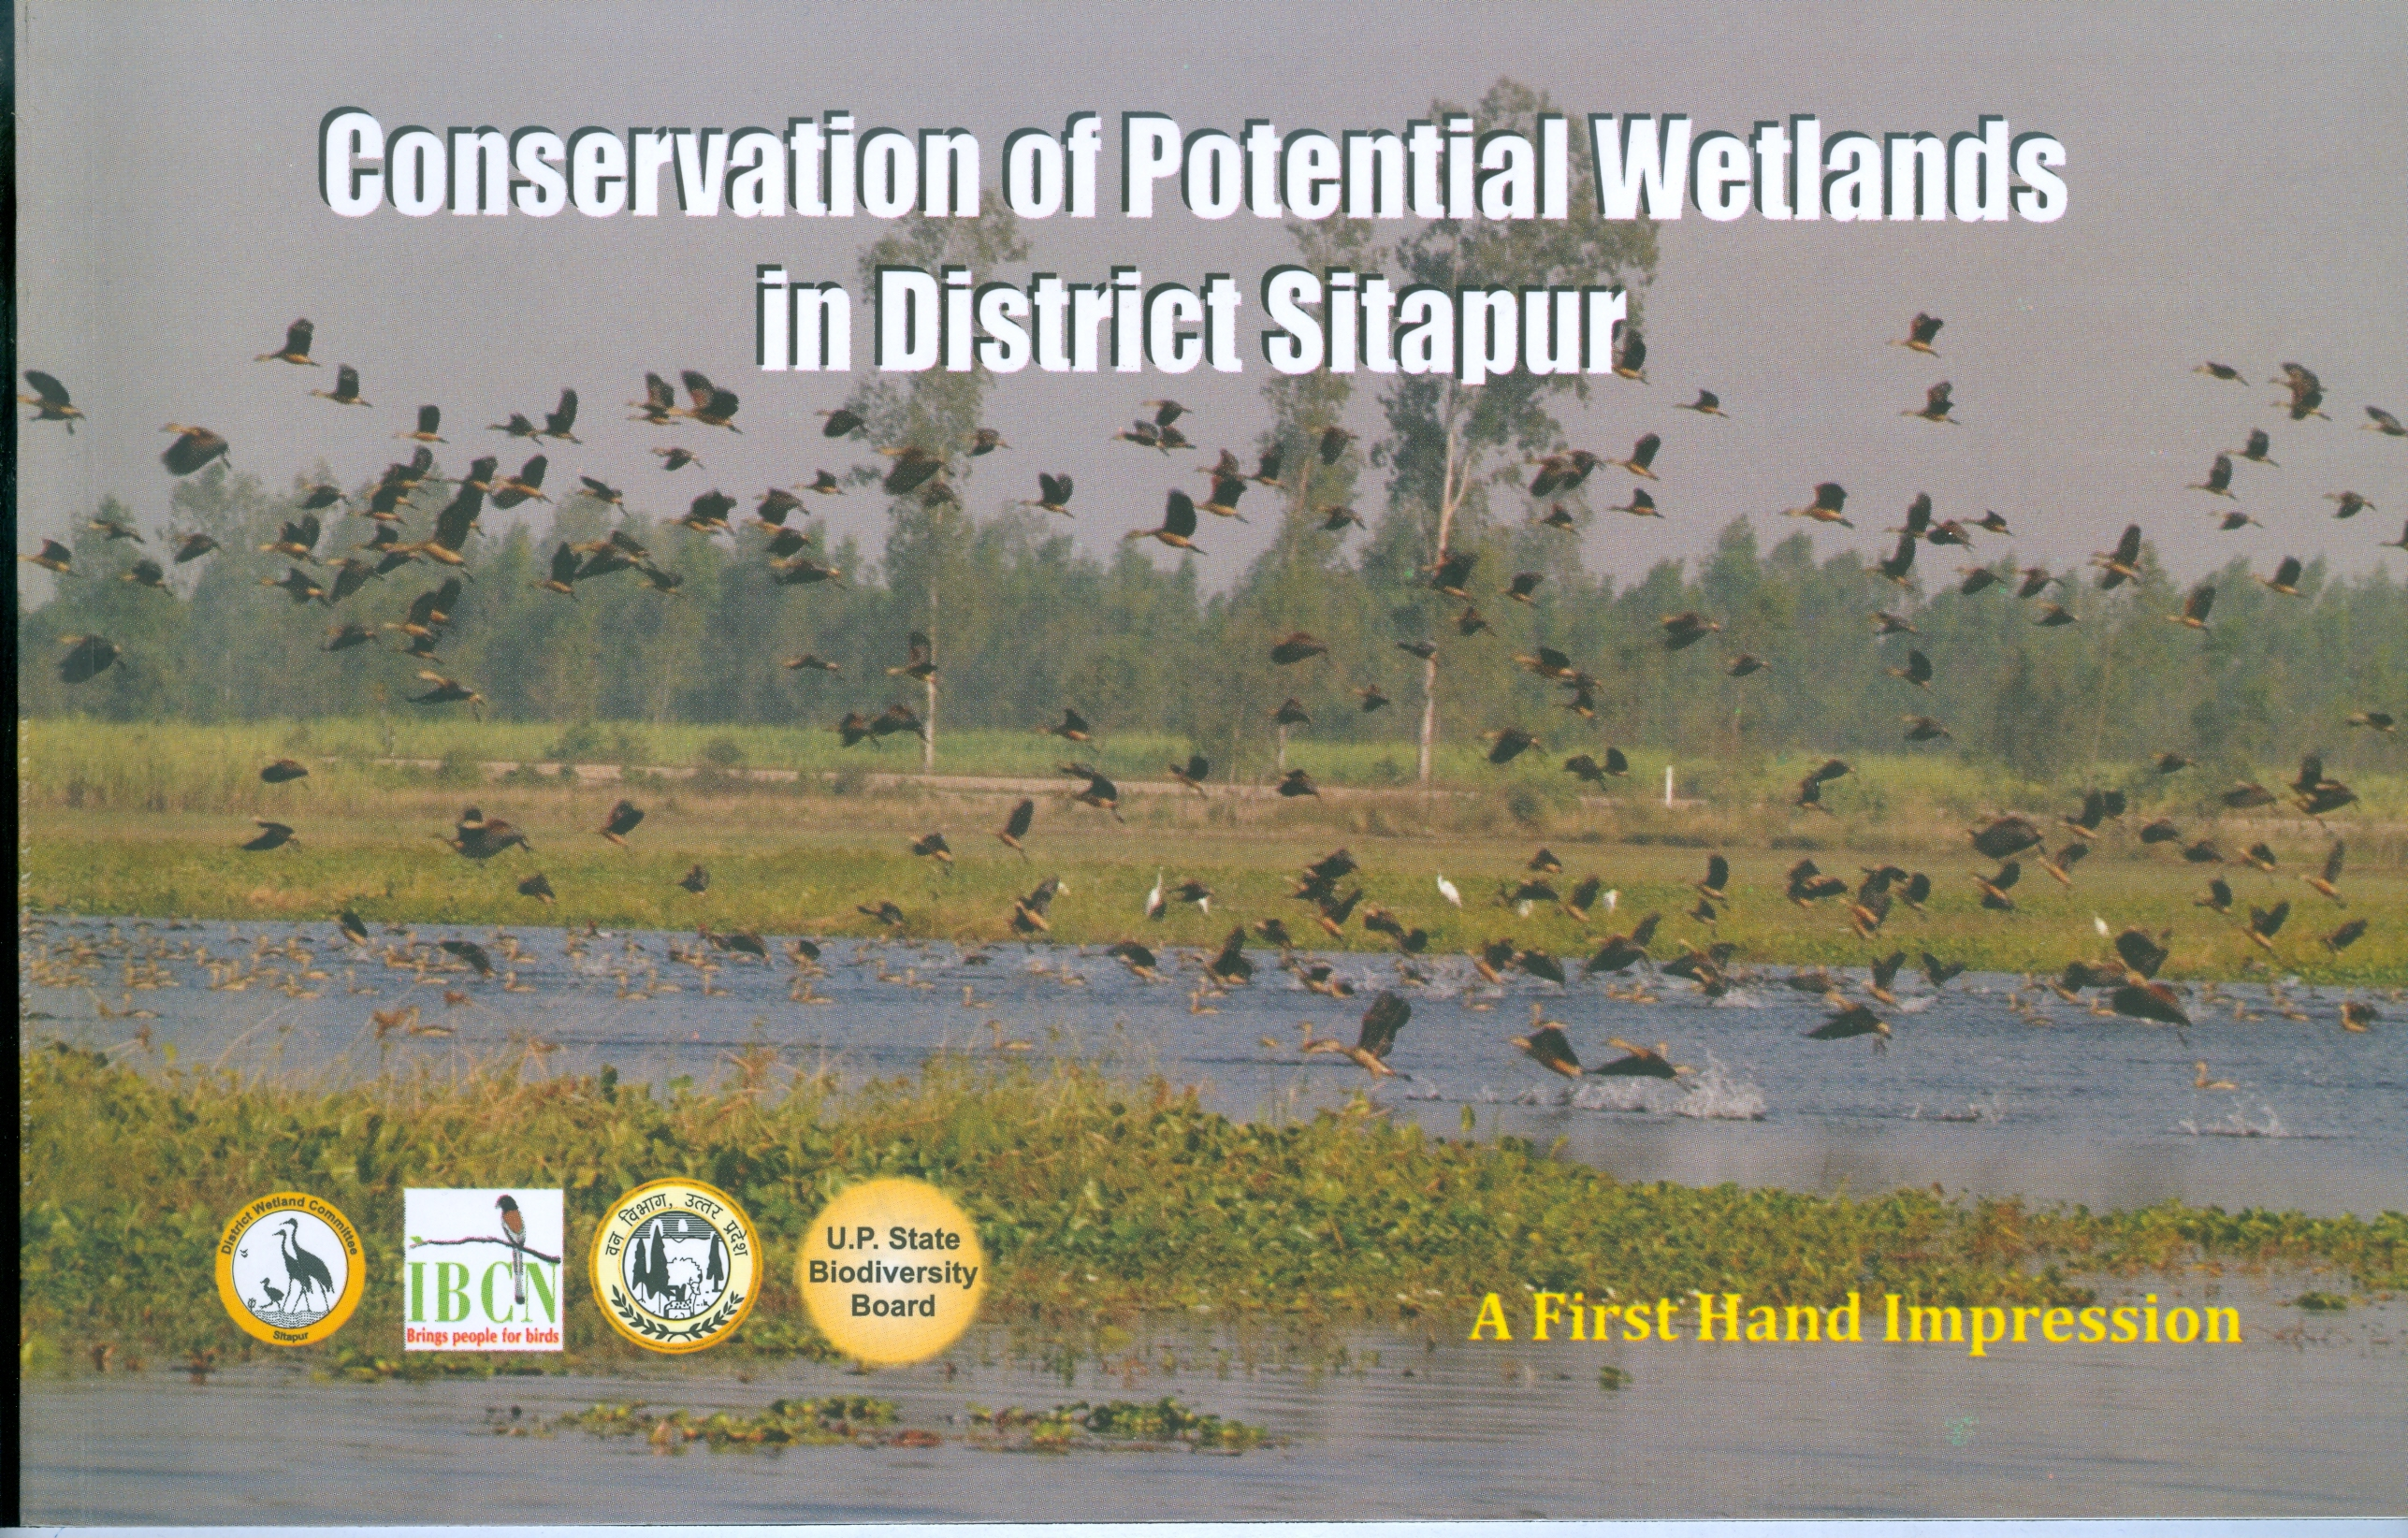 Conservation of Potential Wetlands in Sitapur